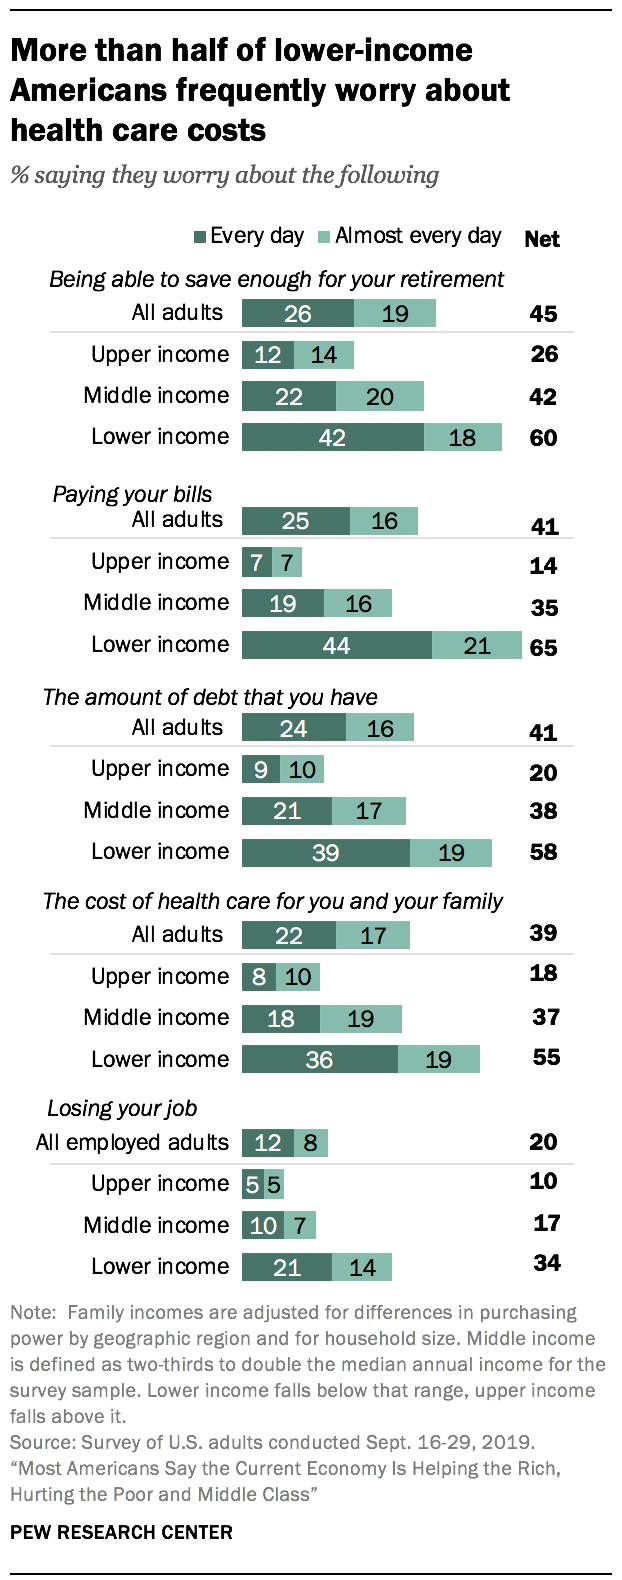 More than half of lower-income Americans frequently worry about health care costs